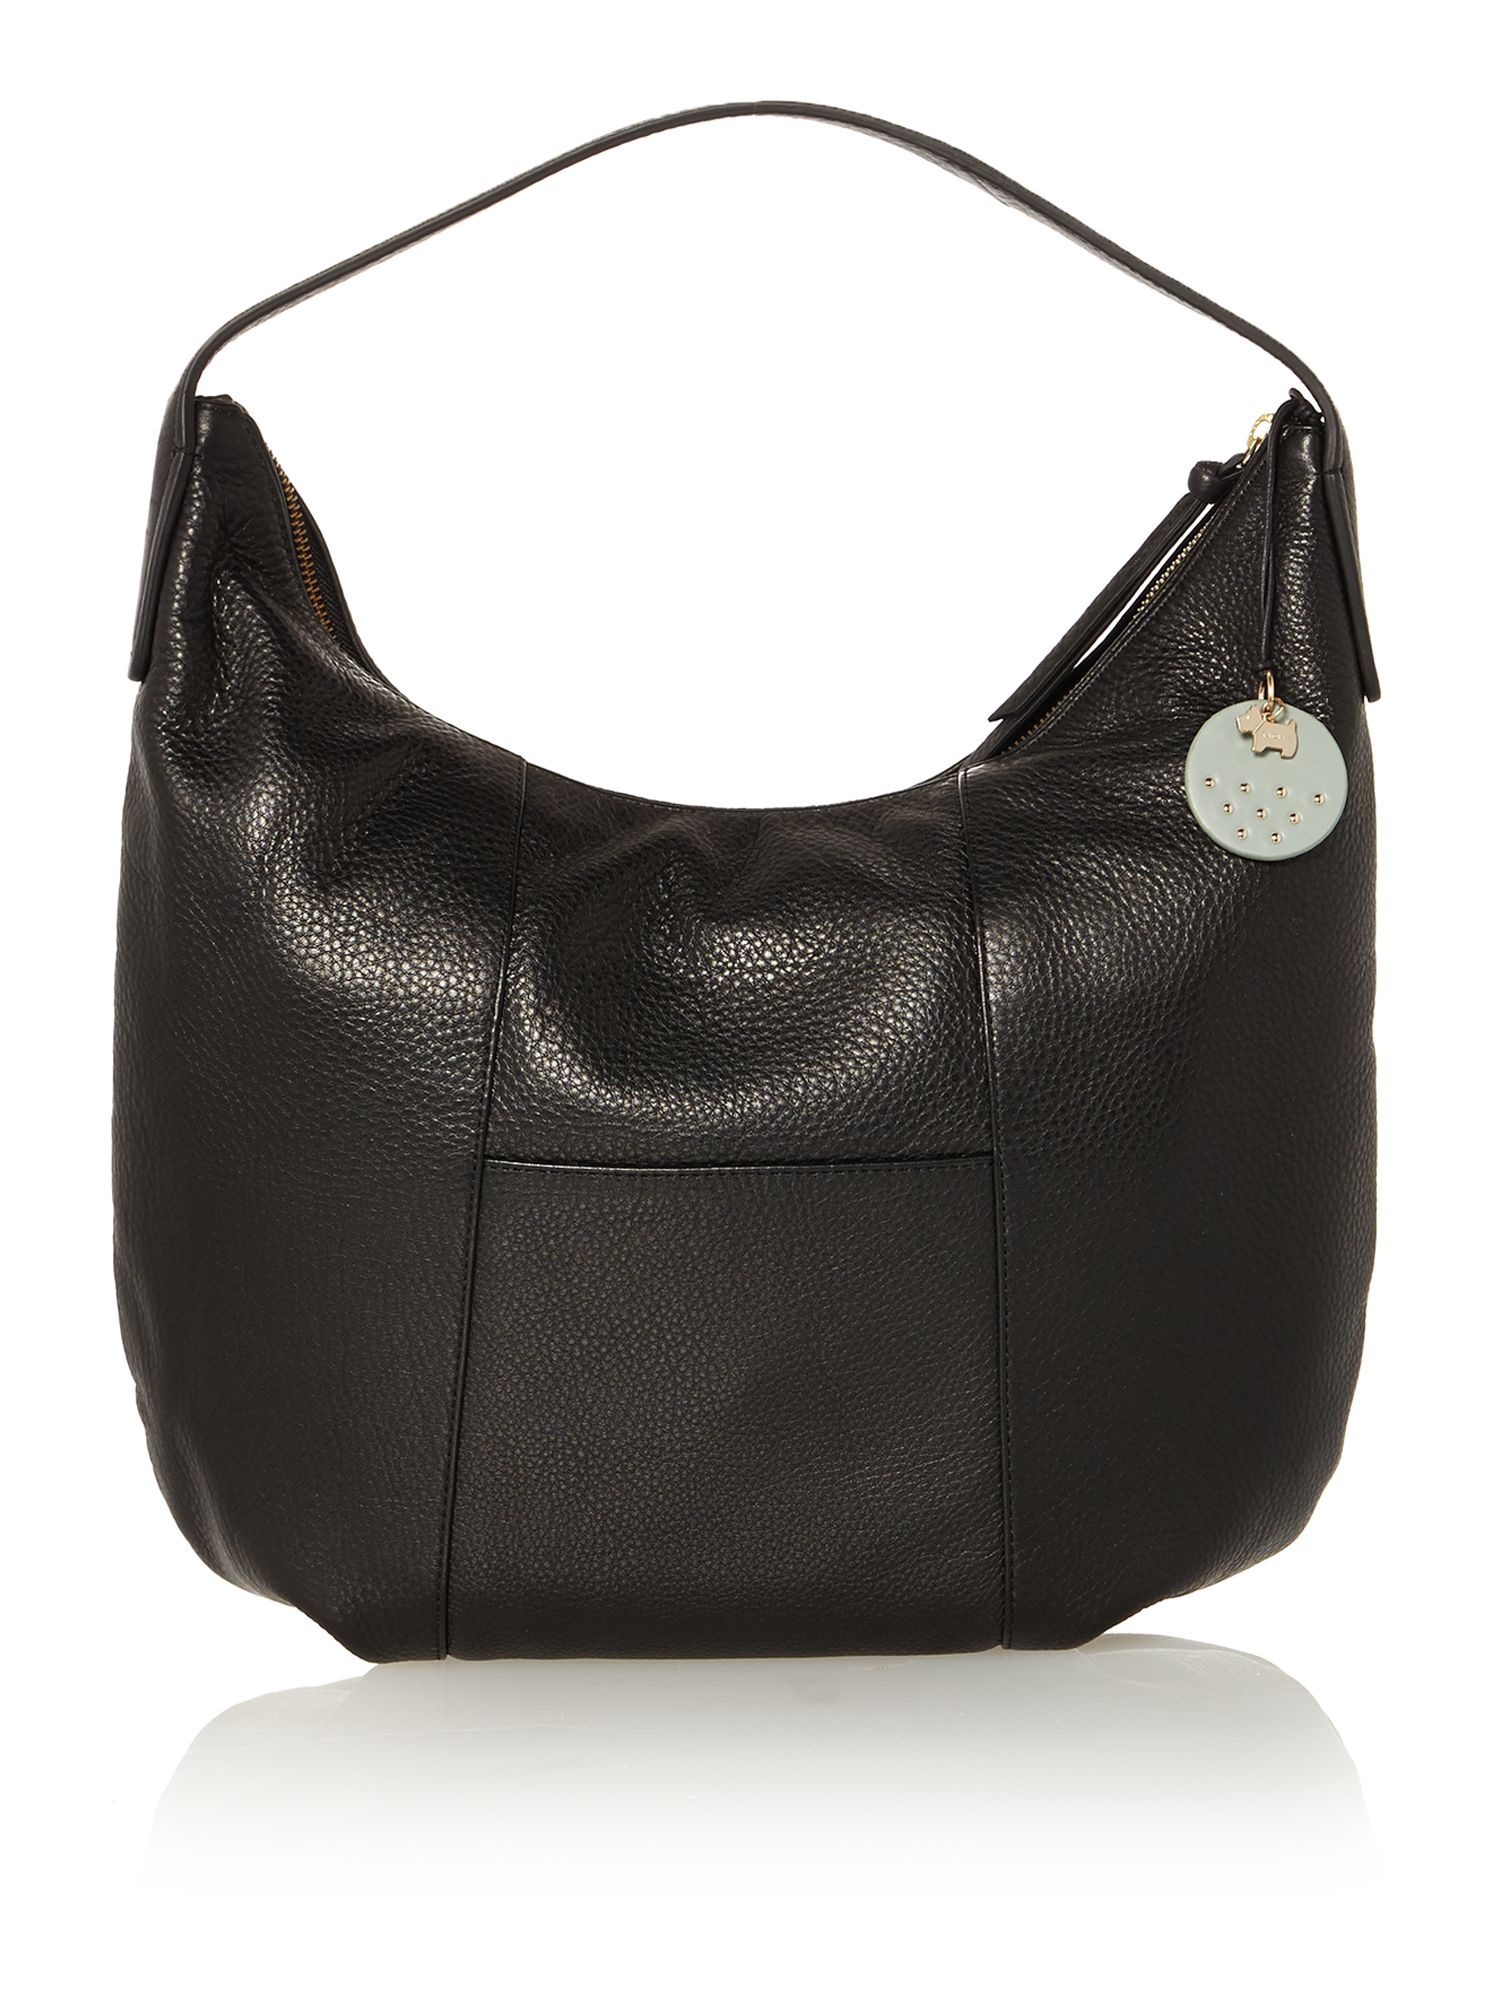 Battersea black large hobo leather bag